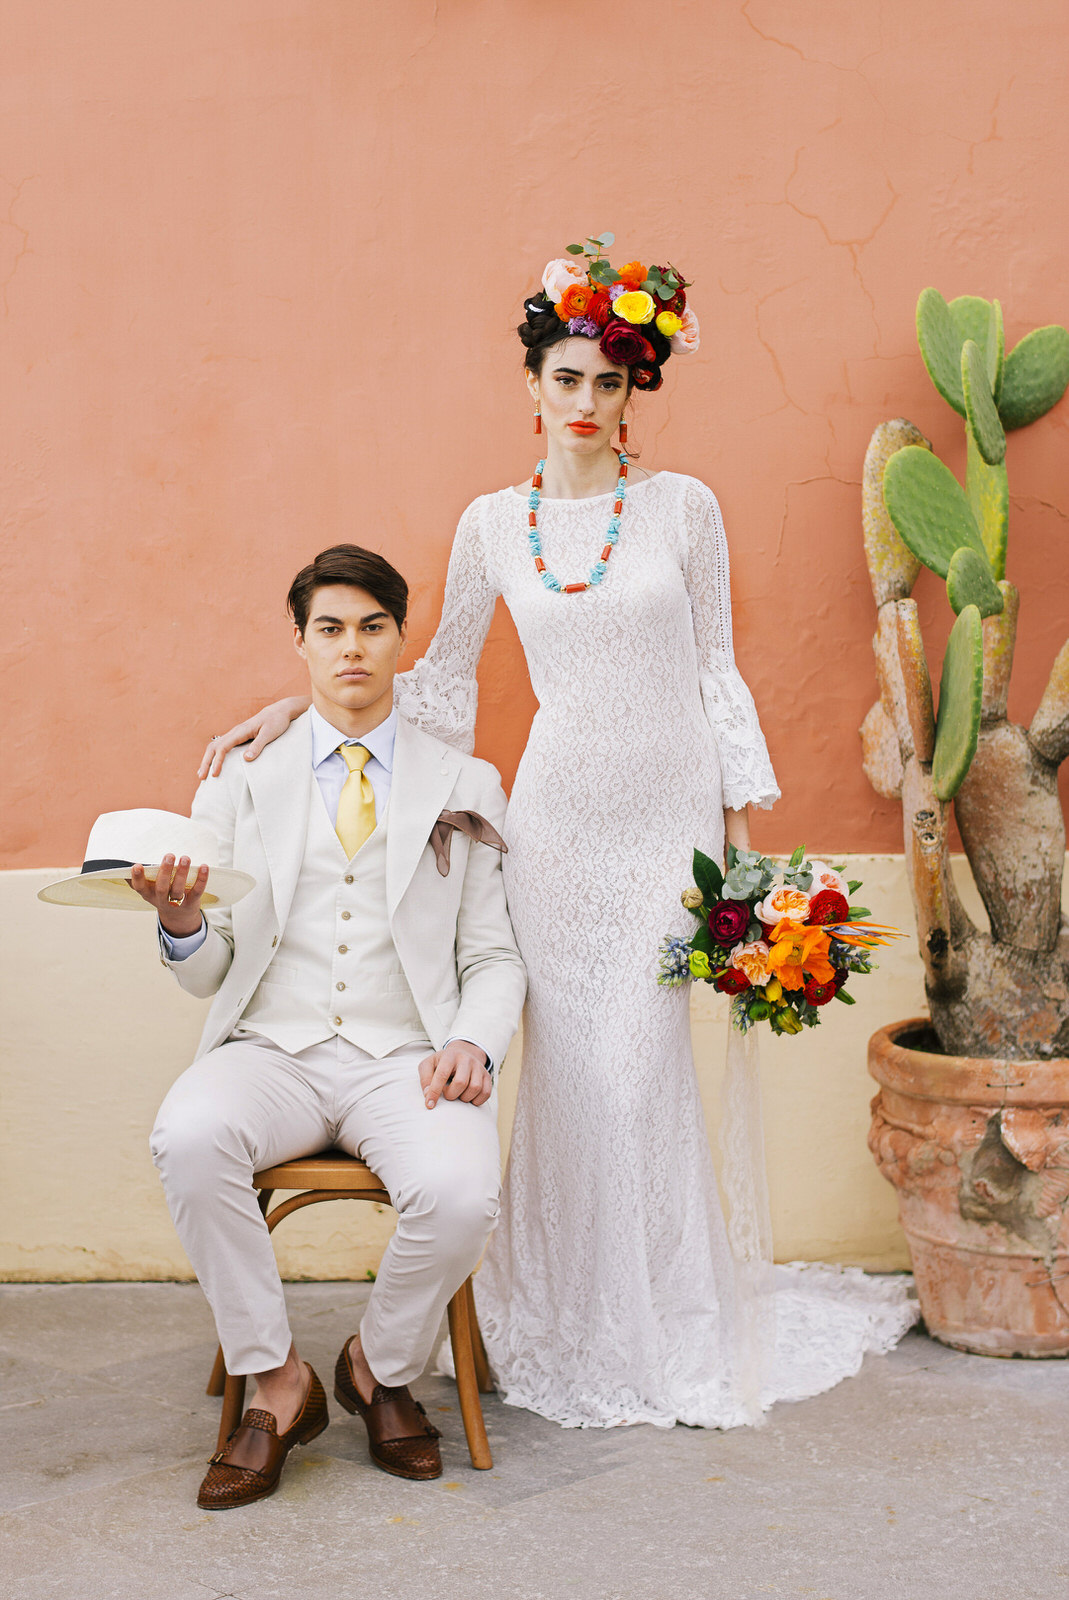 bride and groom's portrait, the groom sitting on the chair and the bride standing